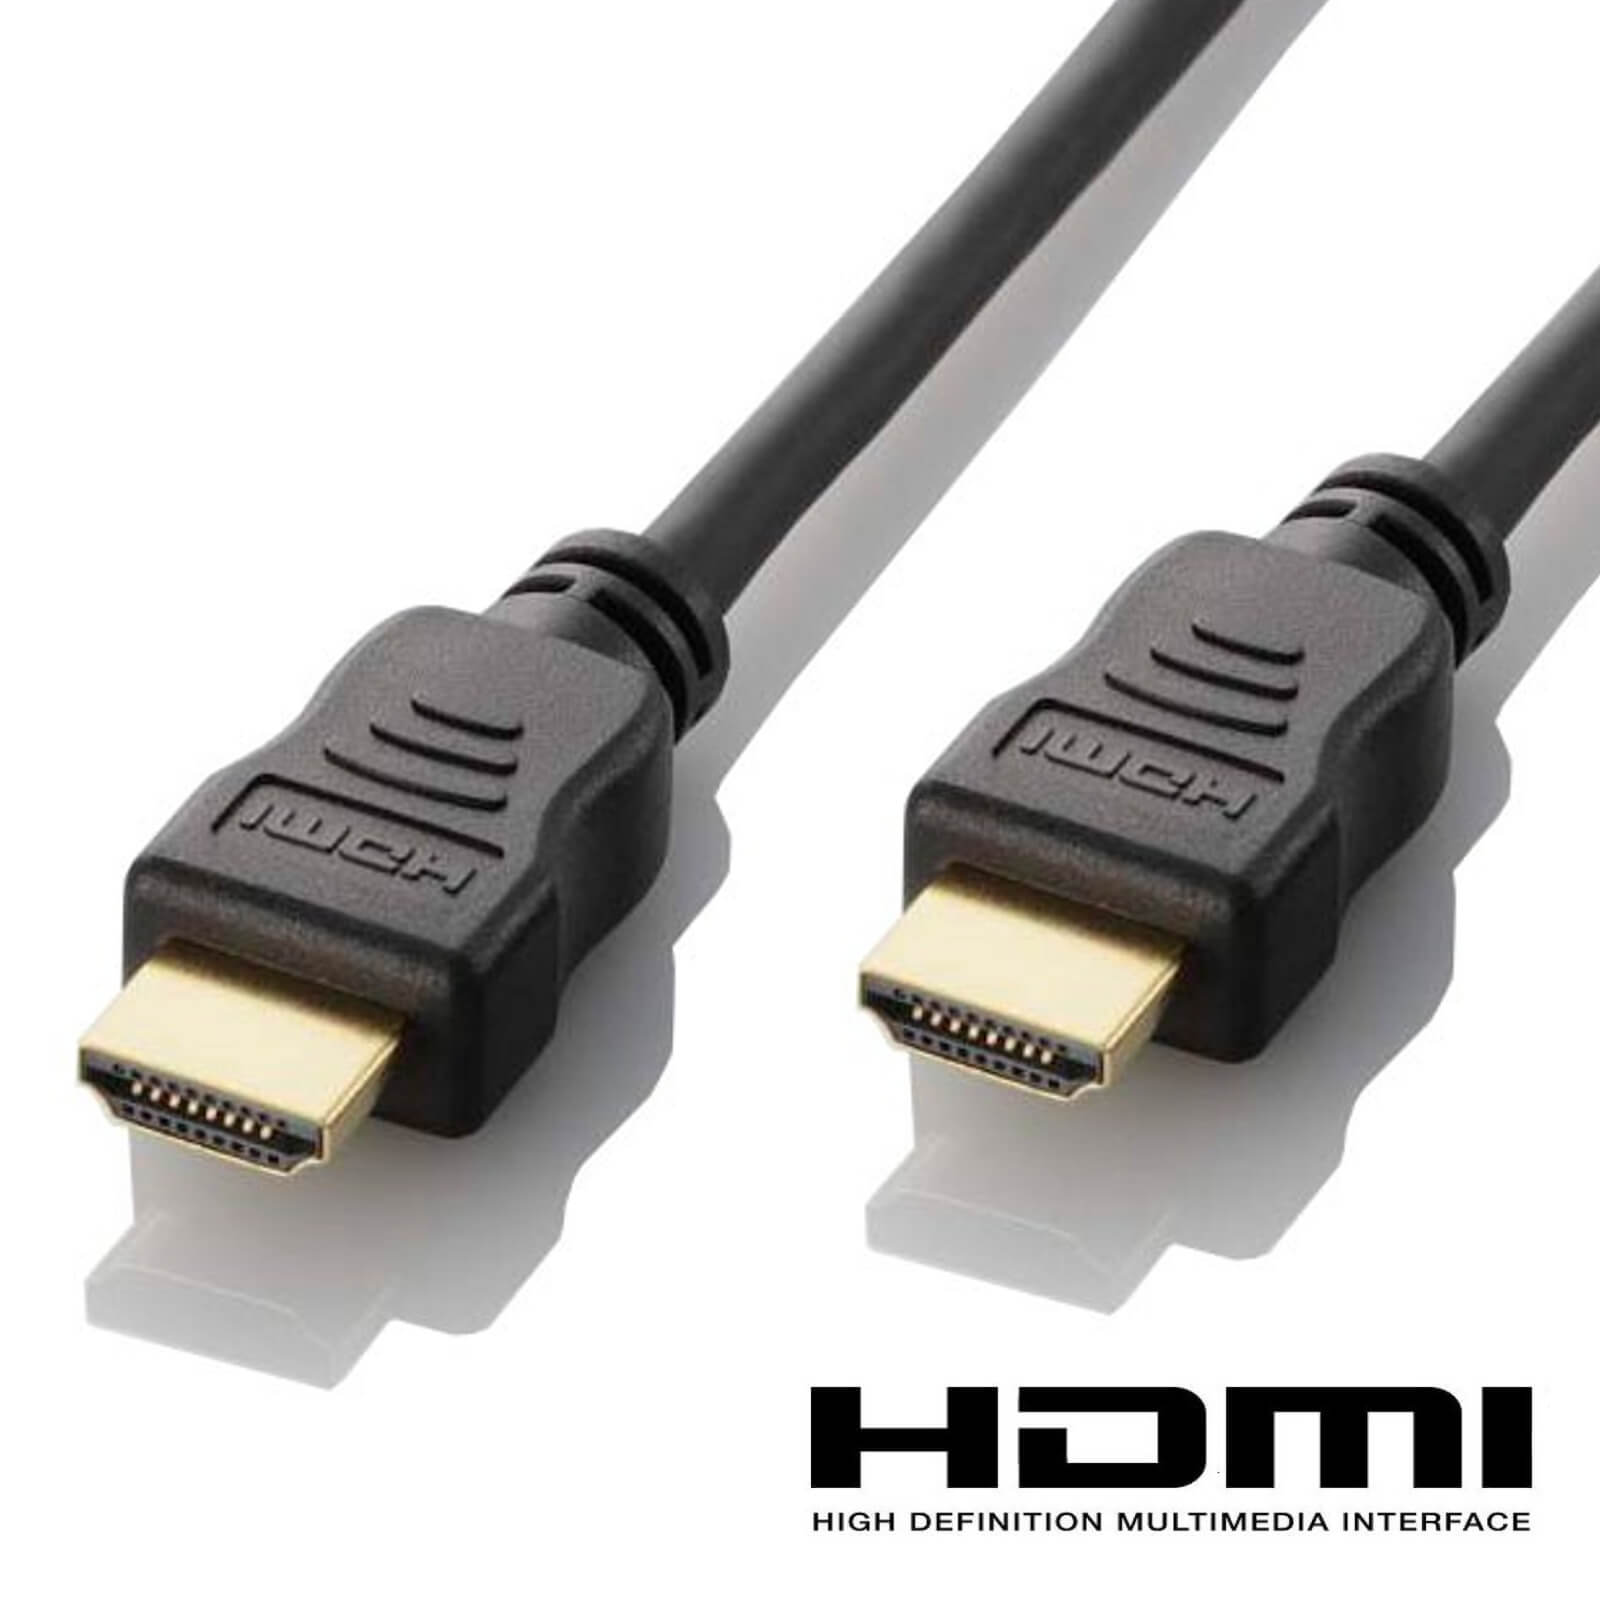 4k Hdmi Wire Diagram Wiring Libraries Firewire How To Choose The Right Cable For Your Tv U2013 Primecables Ca Blog4k